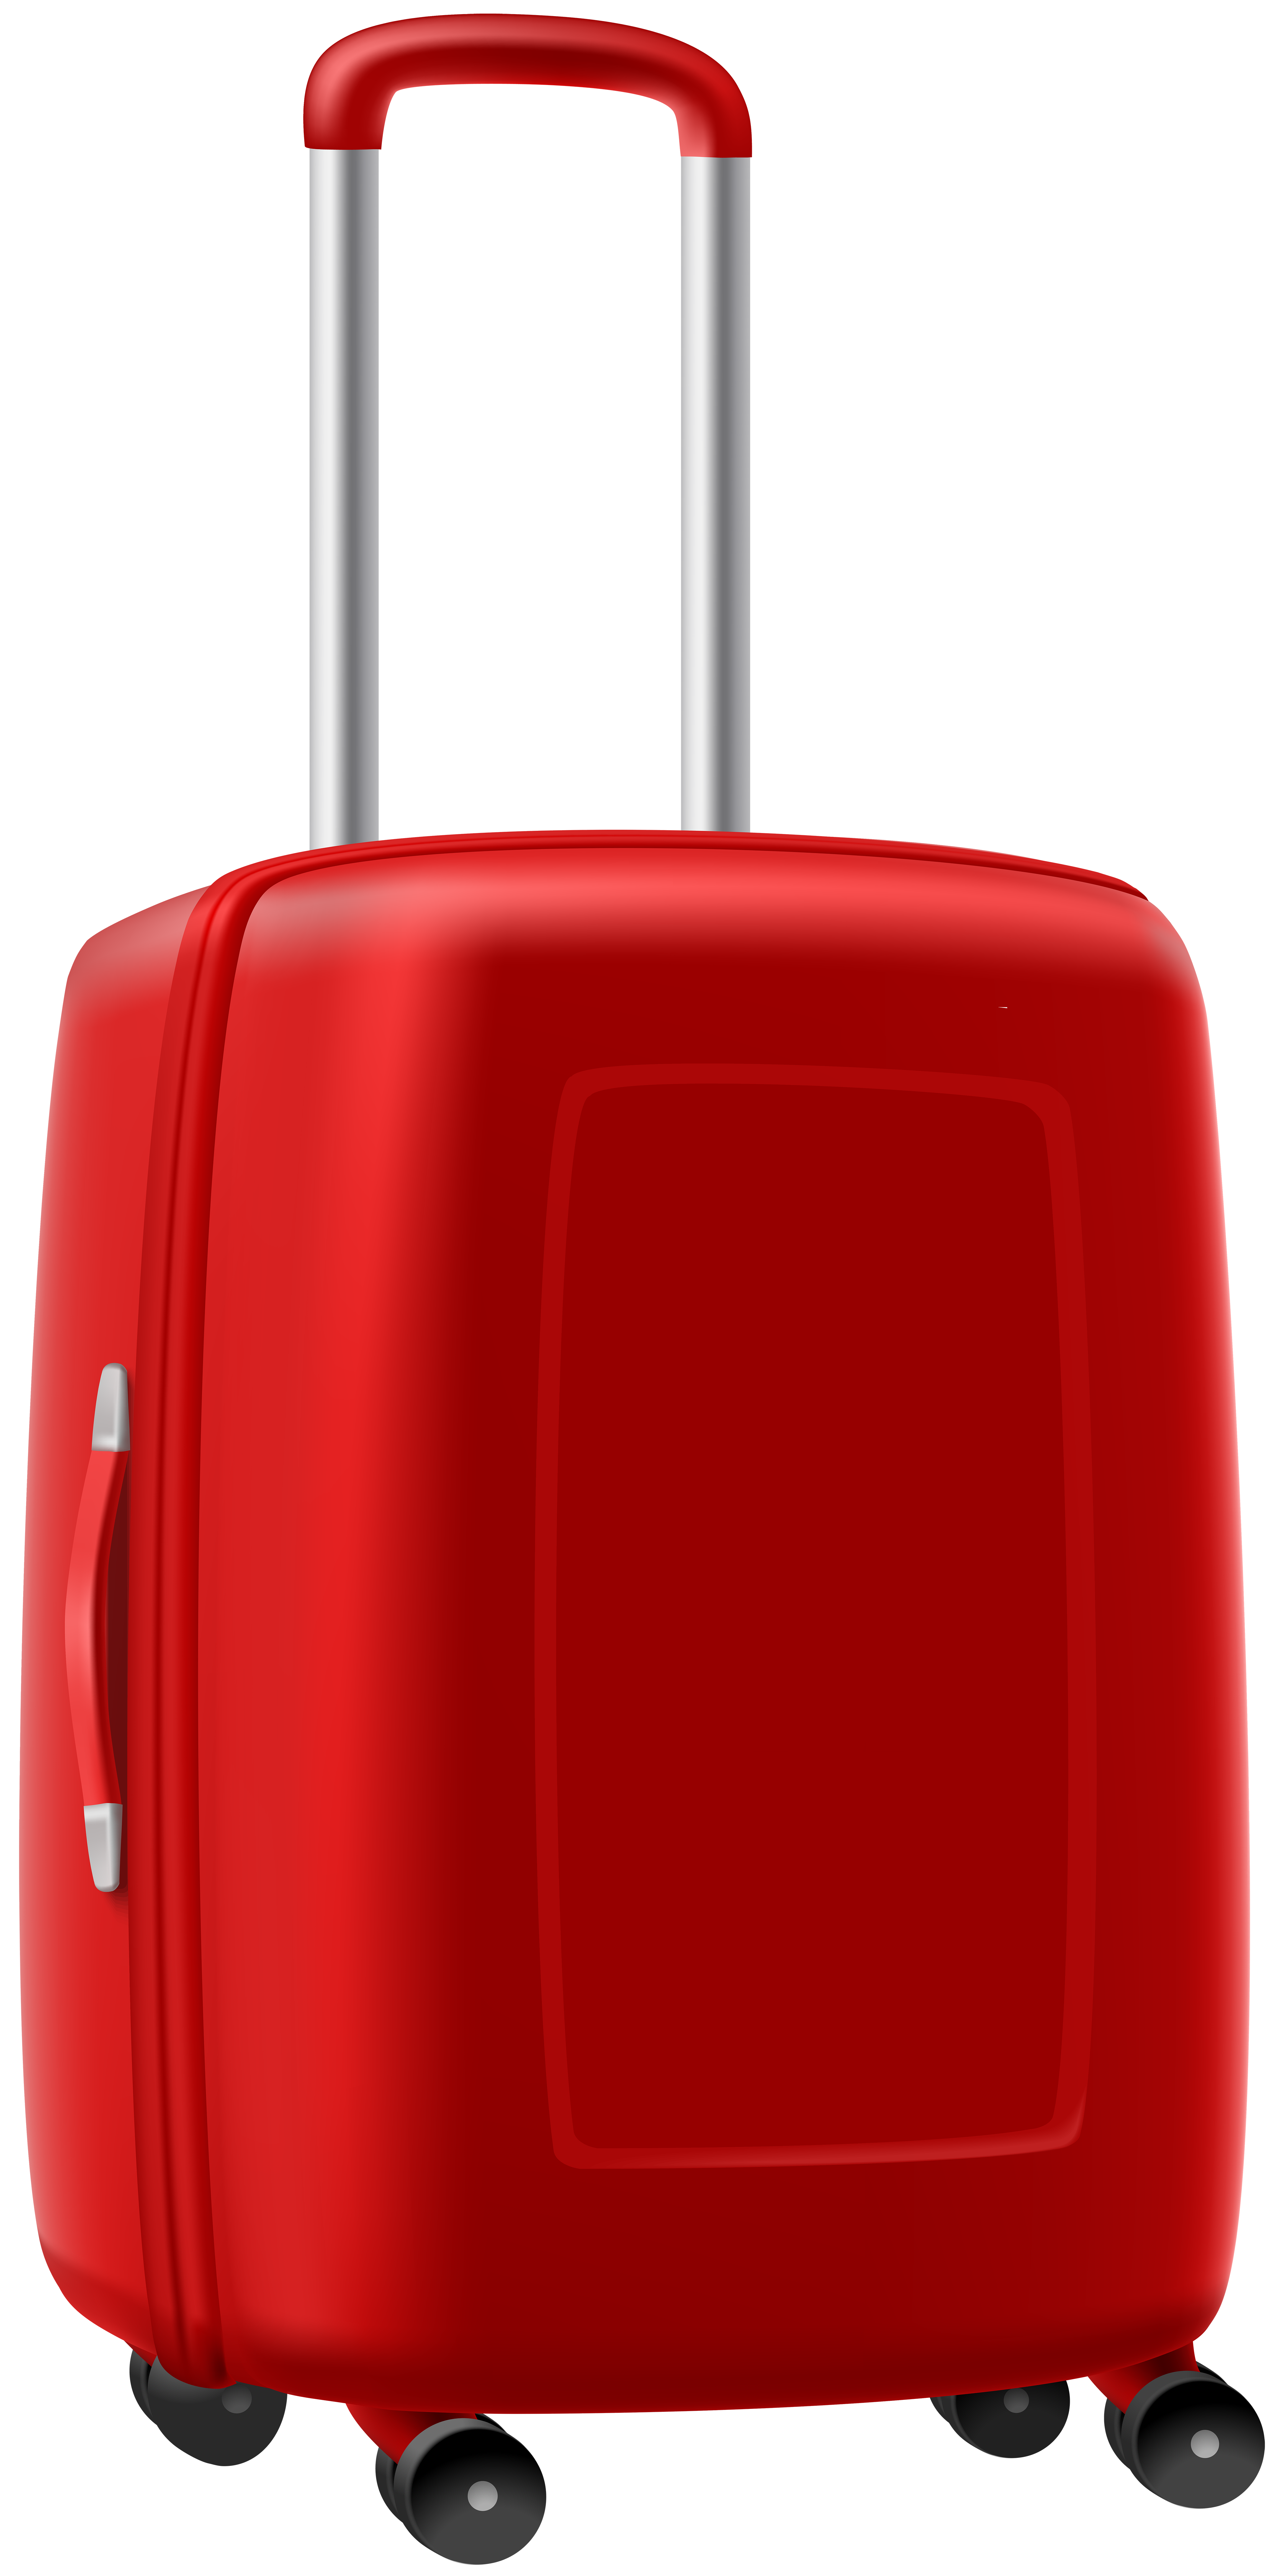 Trolley Suitcase PNG Clipart Image.